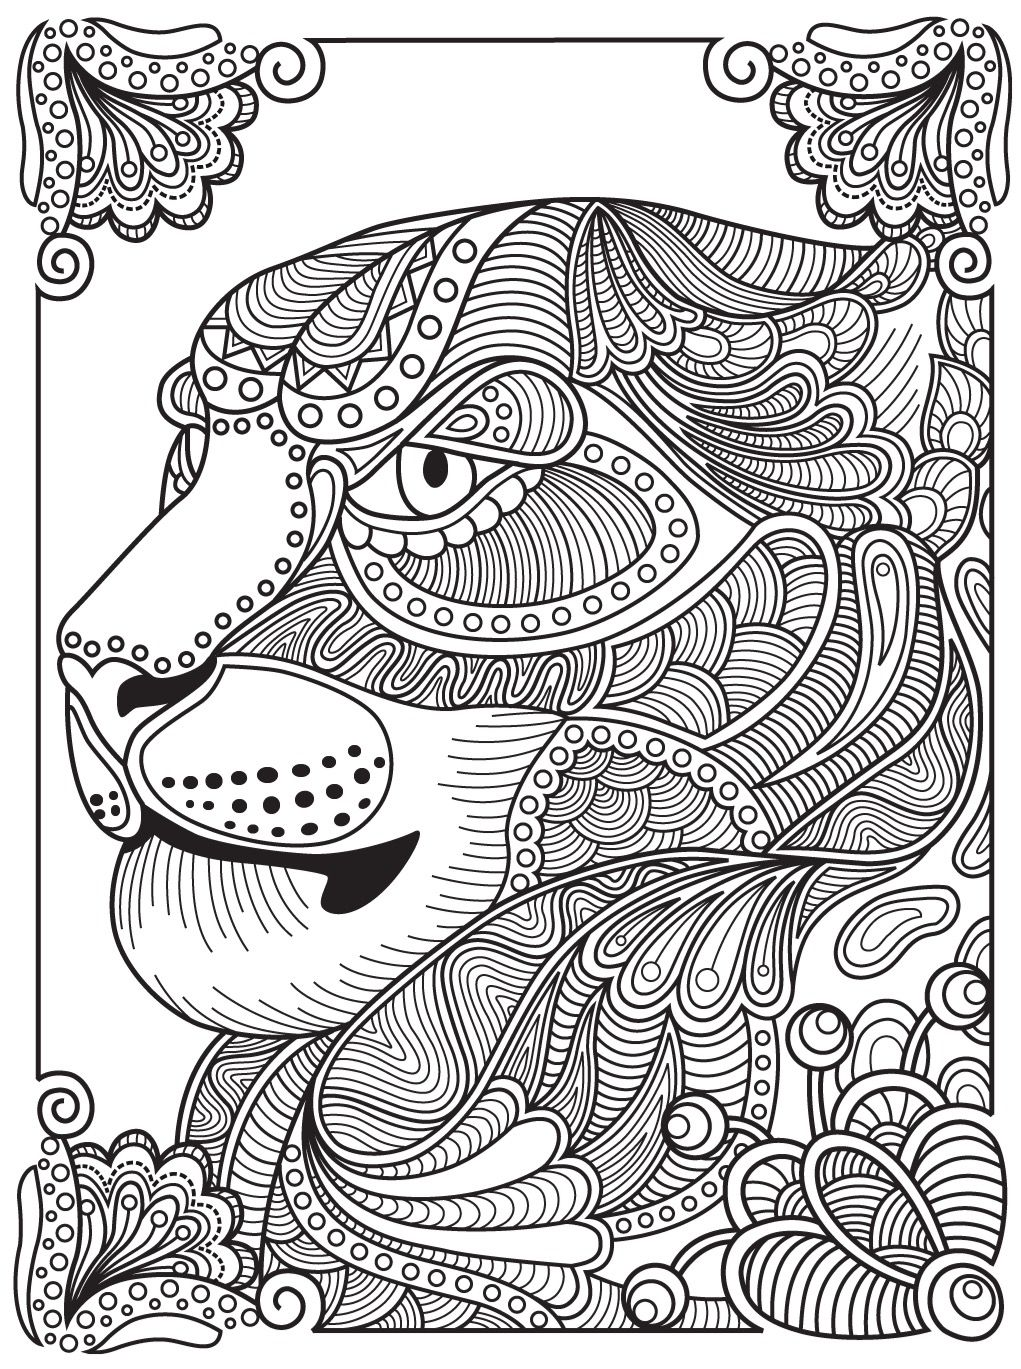 Cats To Color Colorish Free Coloring App For Adults By Goodsofttech Coloring Pages Pokemon Coloring Pages Animal Coloring Pages